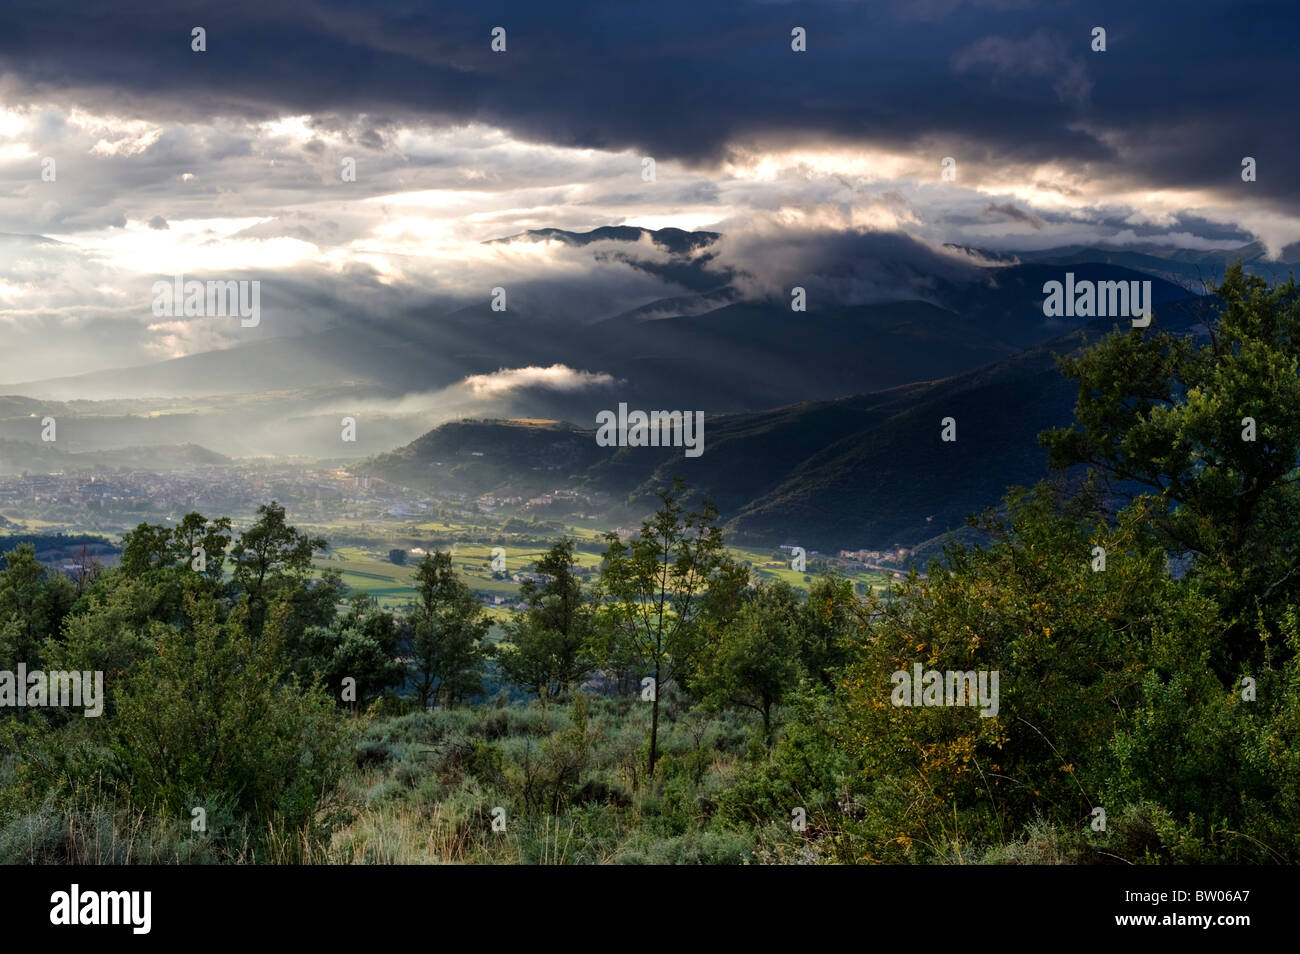 View from the village of Ortedo towards the town of La Seu d'Urgell, in the Pyrenees of Catalonia, Spain, after Stock Photo